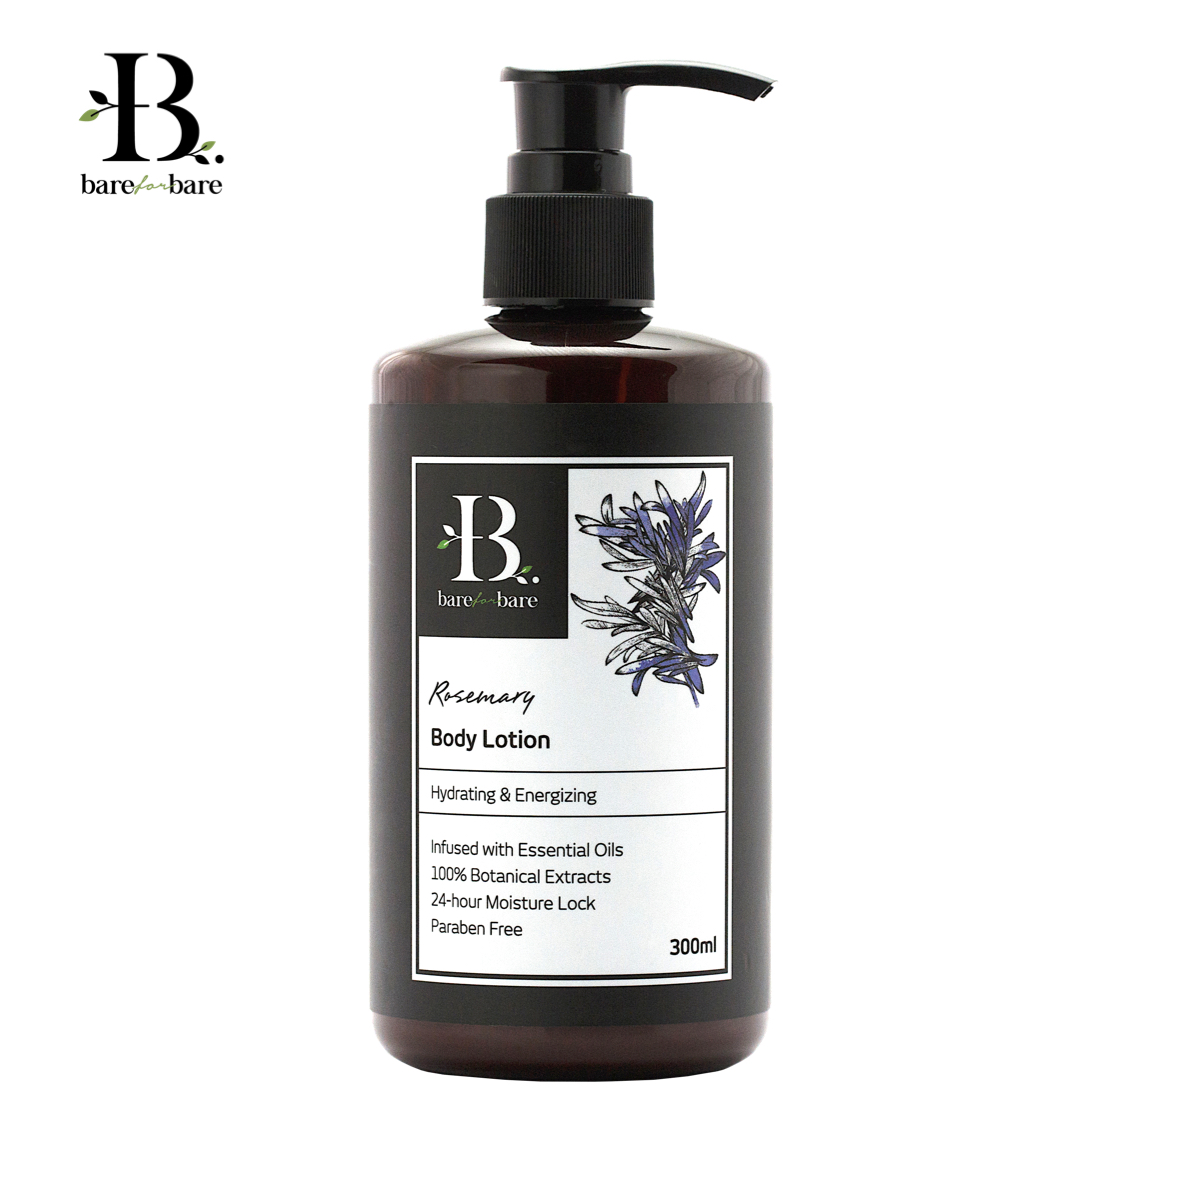 [MPLUS] Bare For Bare Body Lotion Rosemary 300Ml